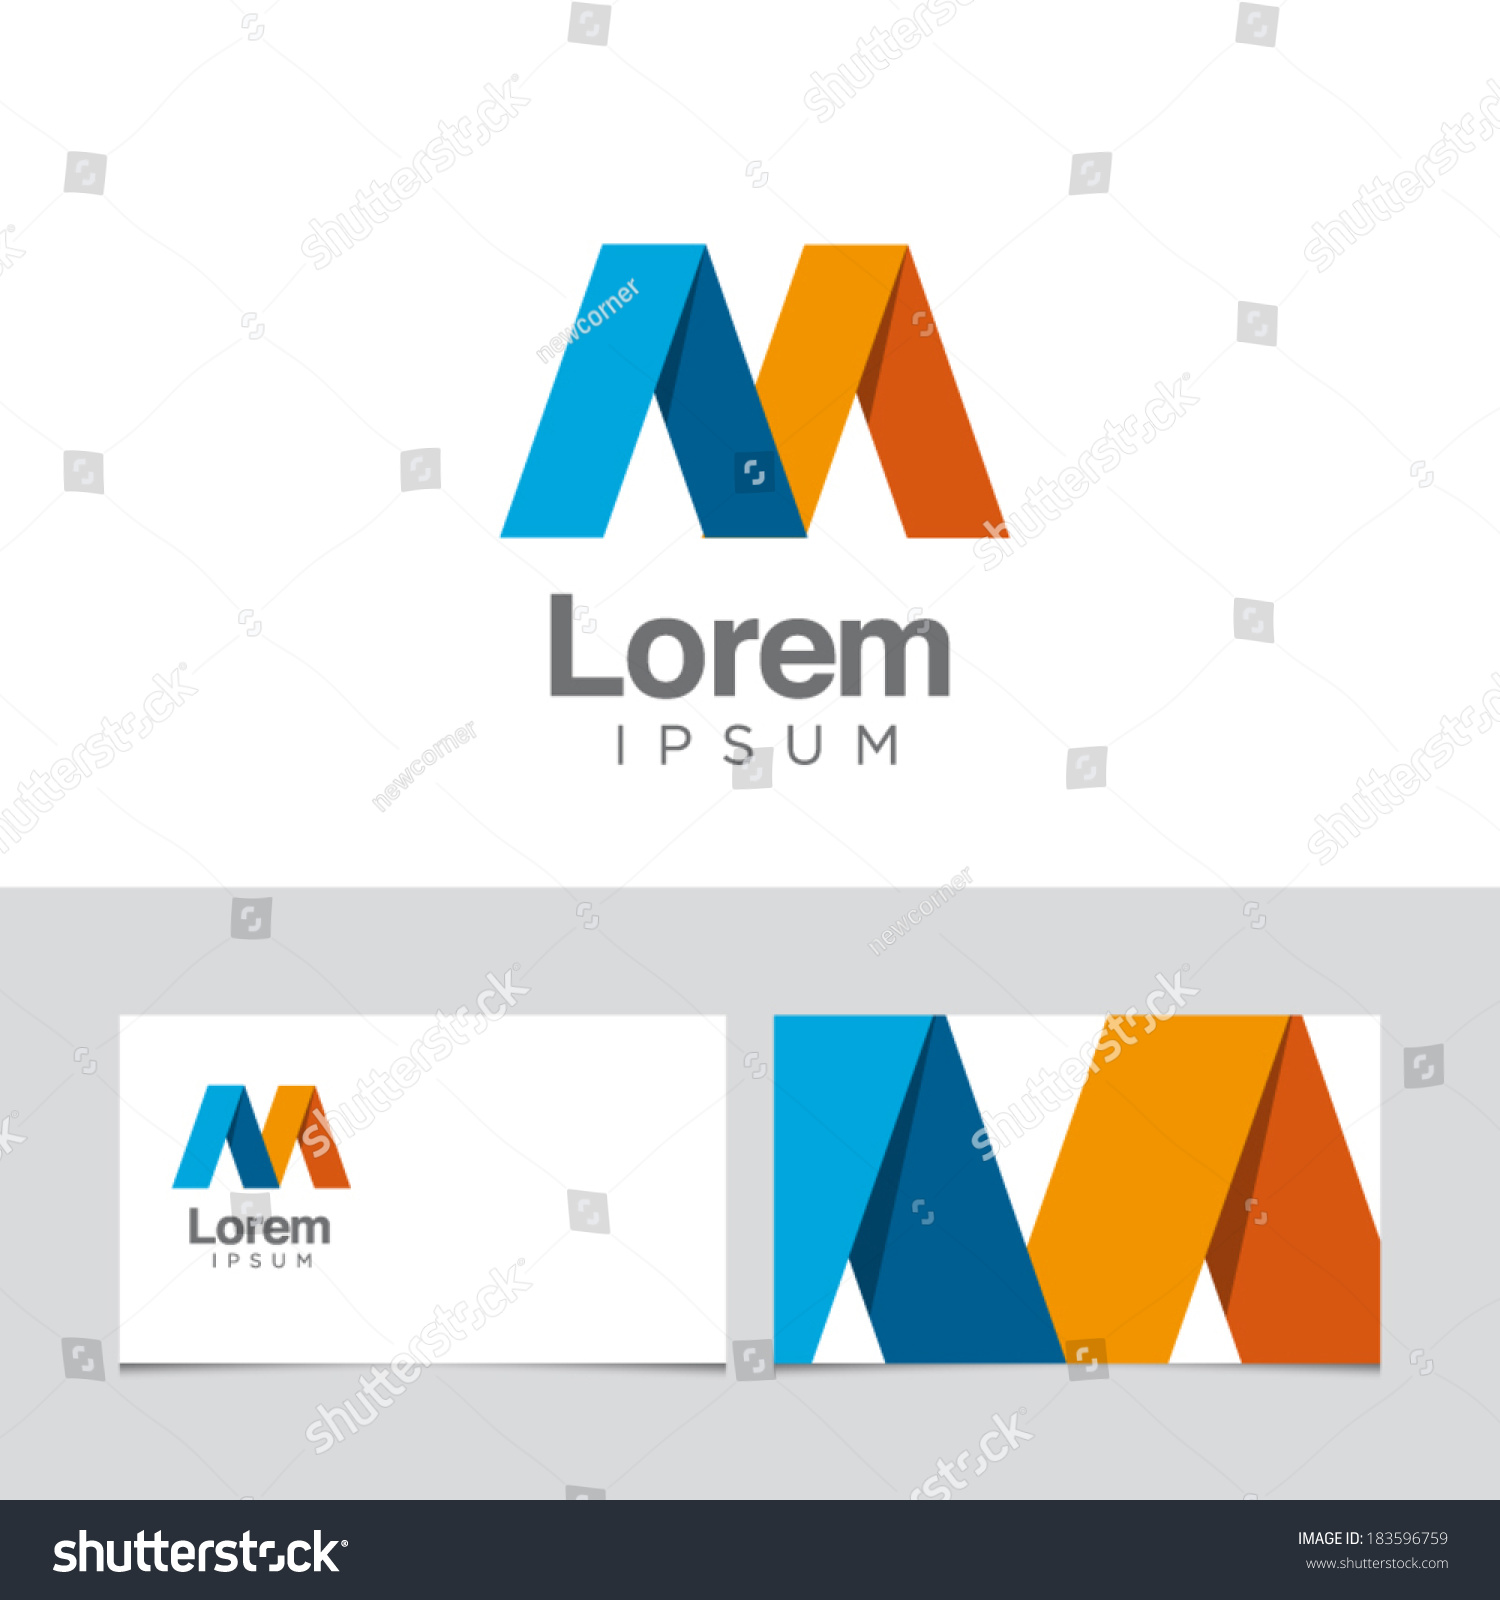 Icon Design Element Business Card Template Stock Photo (Photo ...